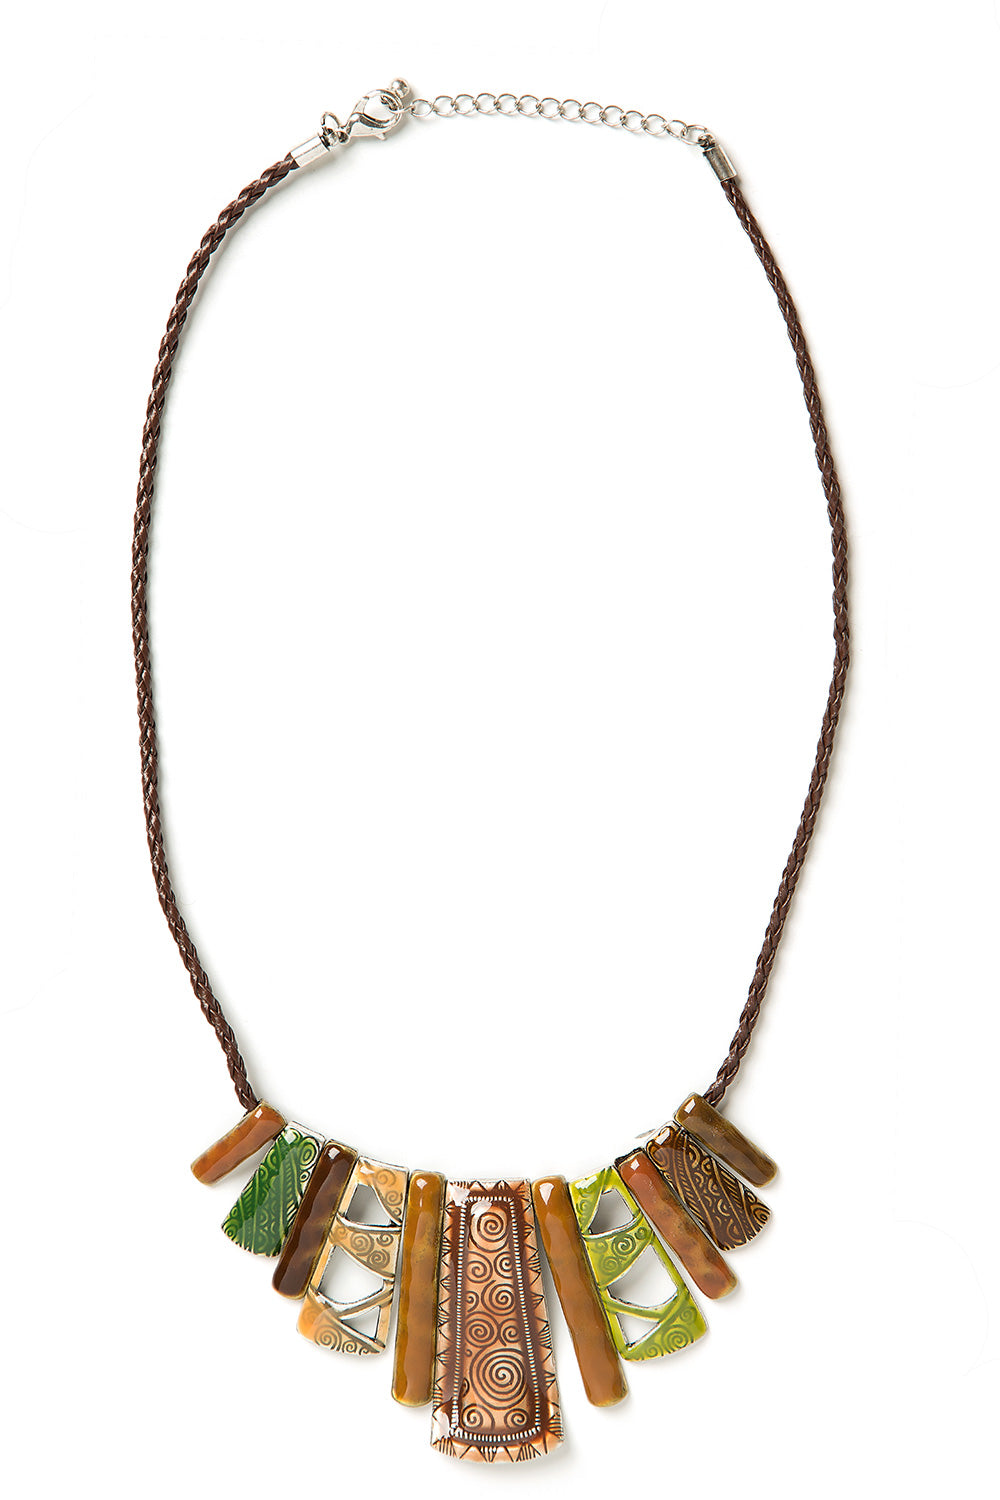 Type 3 Mayan Metal Necklace